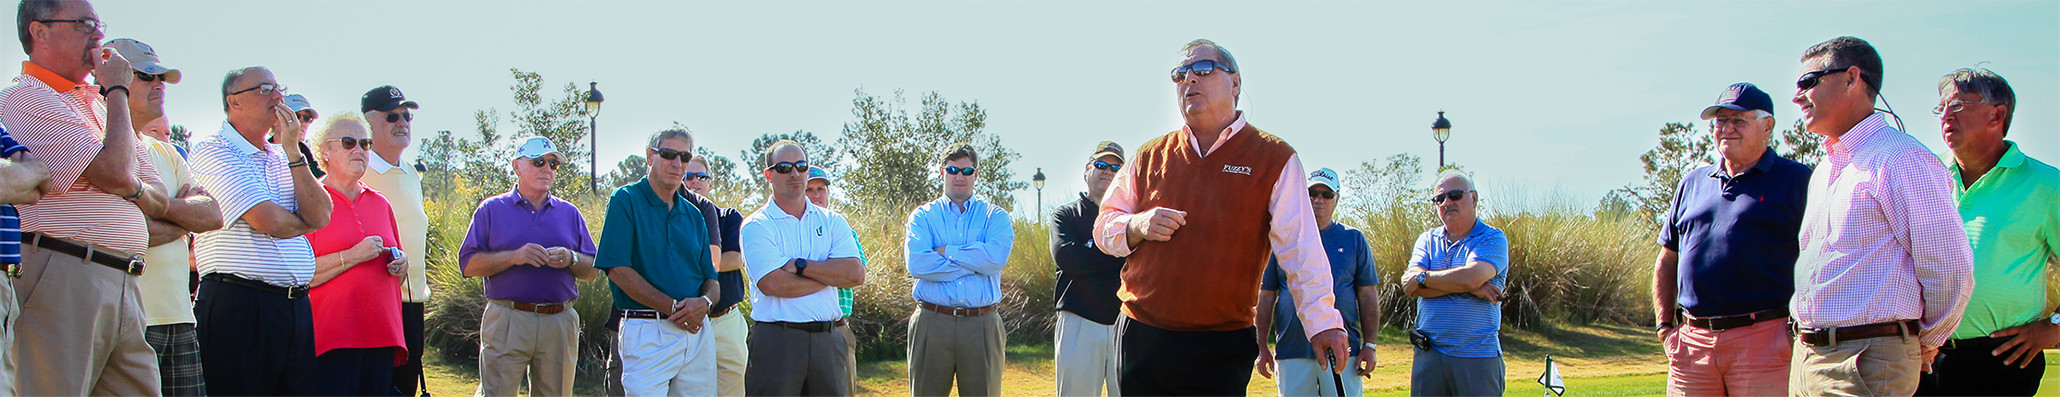 Fuzzy Zoeller talks with residents on a green during a visit.